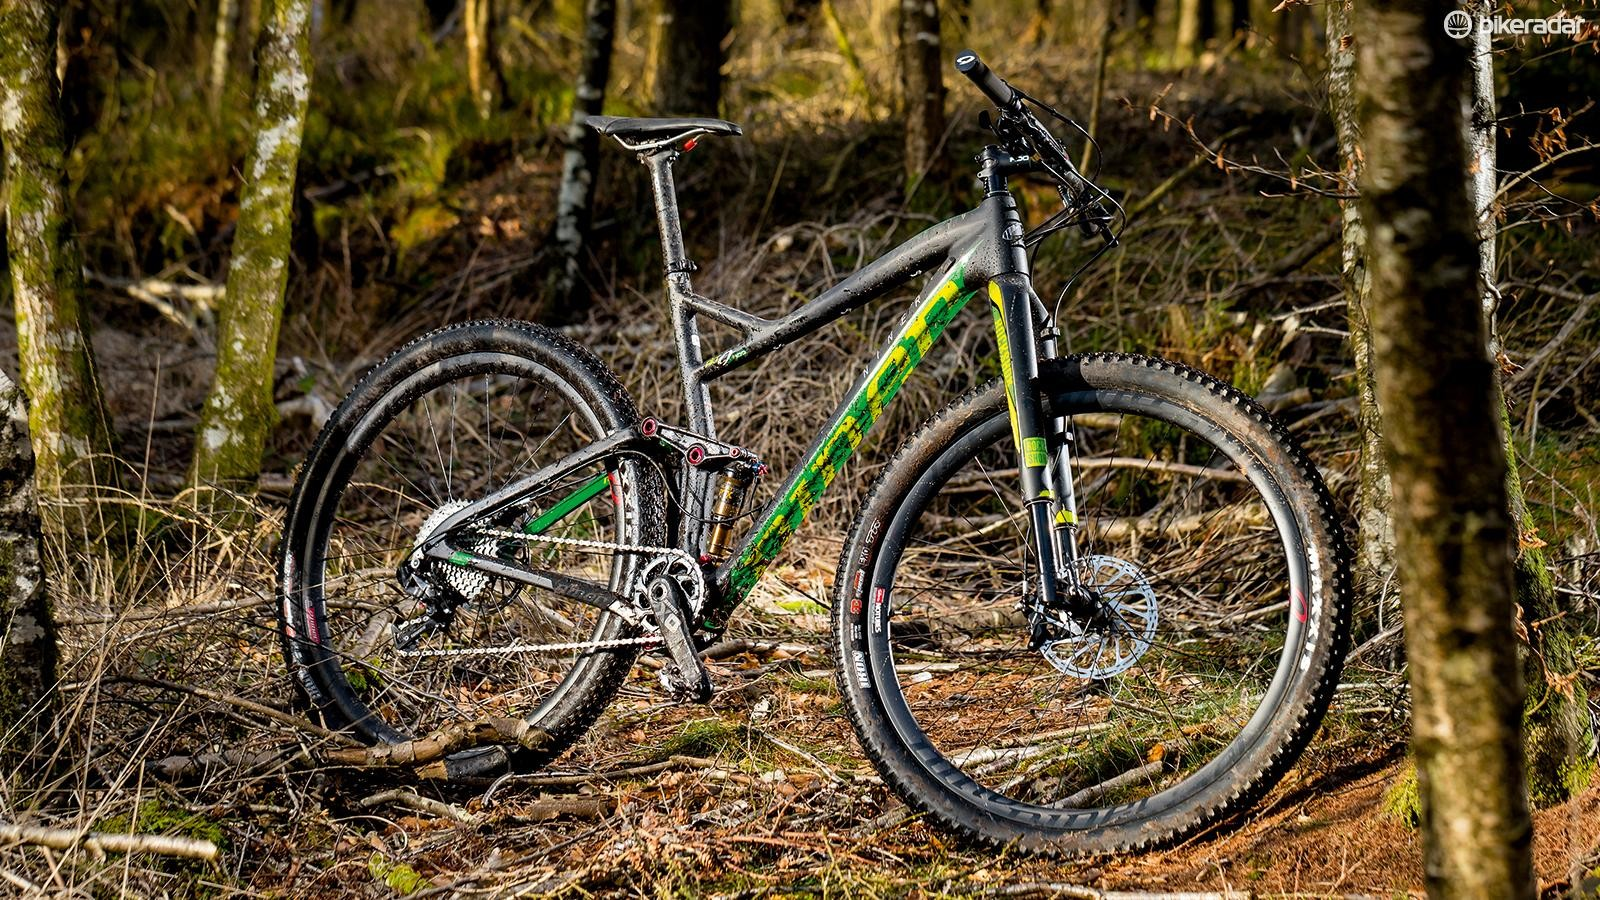 Niner's RKT 9 RDO 4-Star X01 is an addictive speed machine